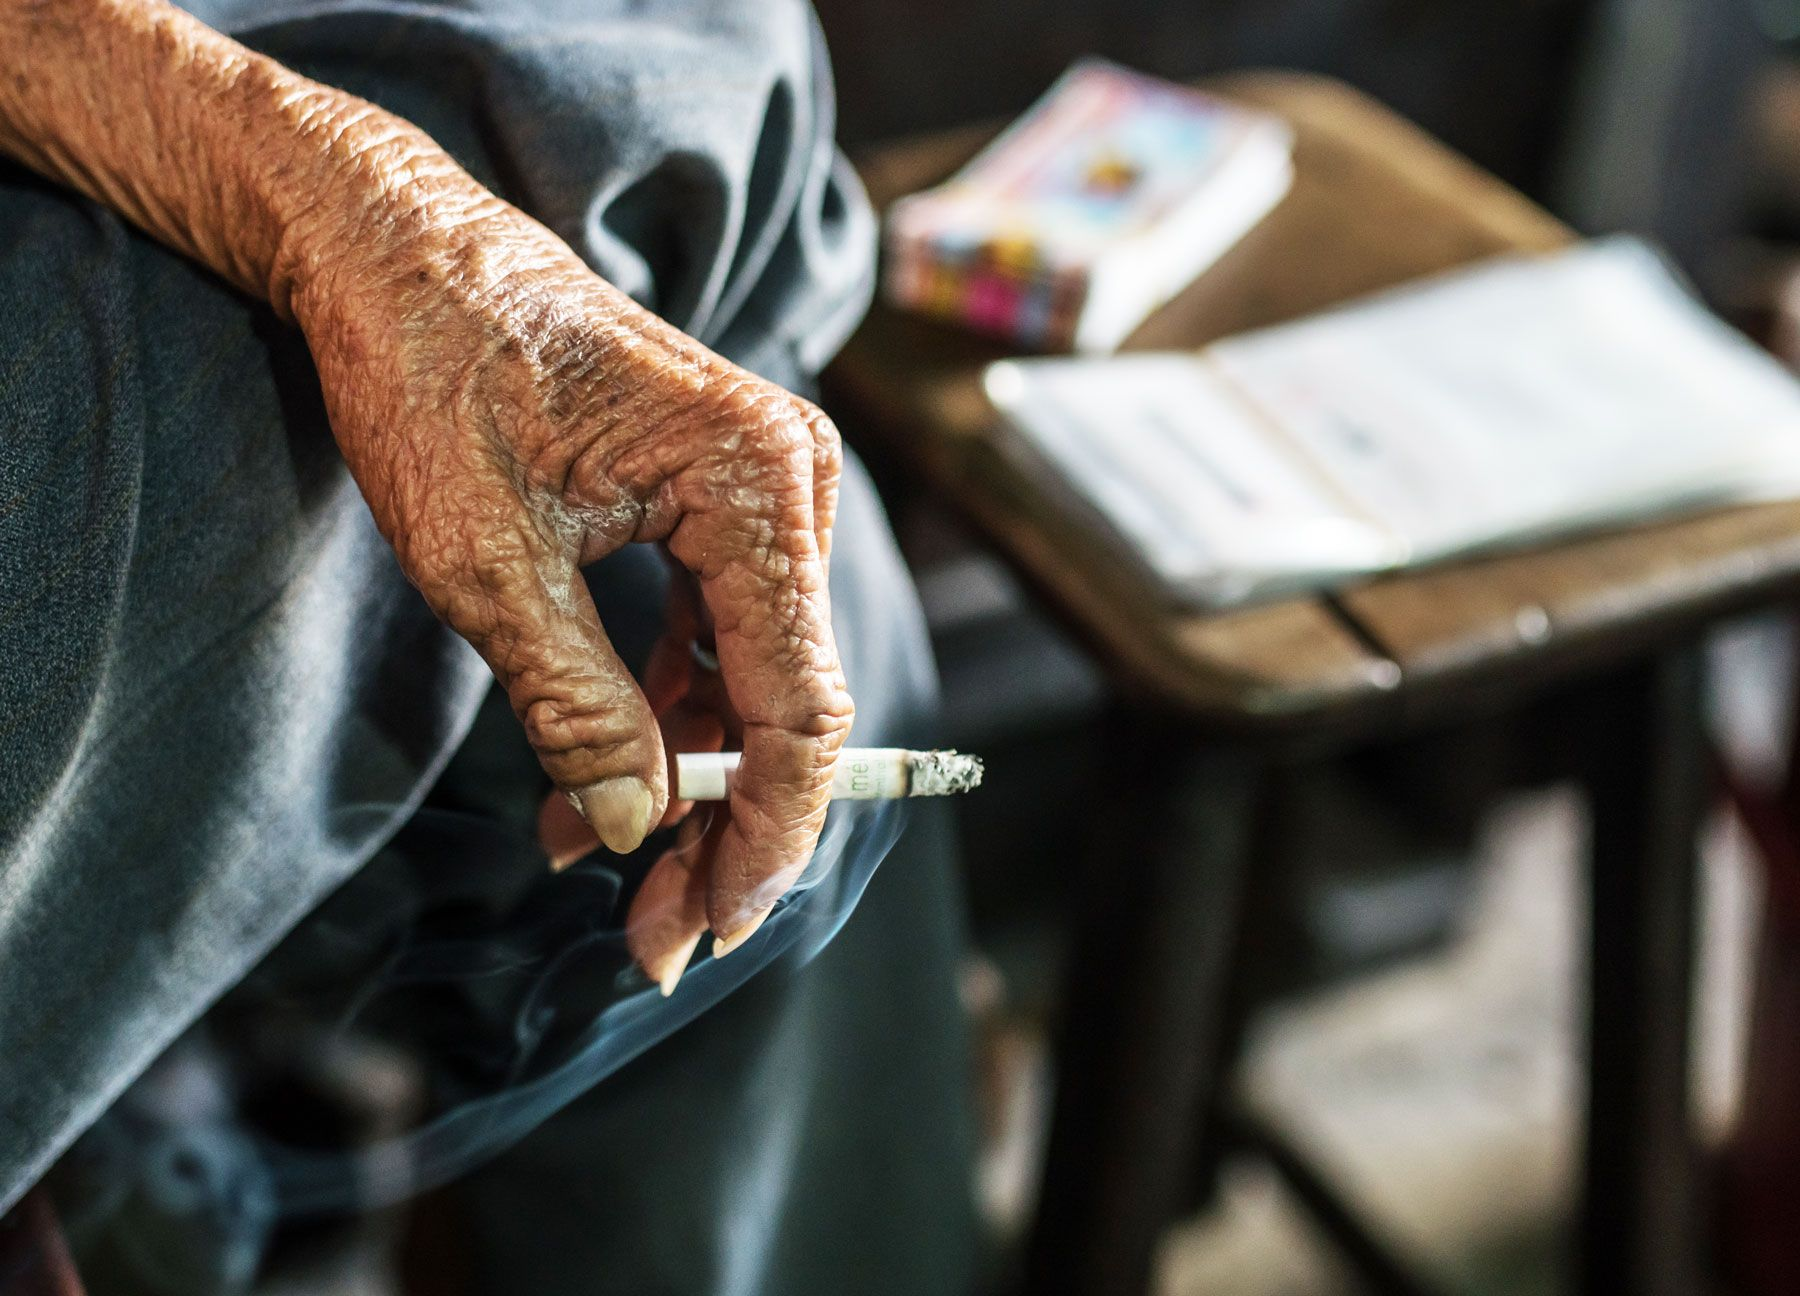 Communication on this topic: 6 Ways Smoking Makes You Look Older, 6-ways-smoking-makes-you-look-older/